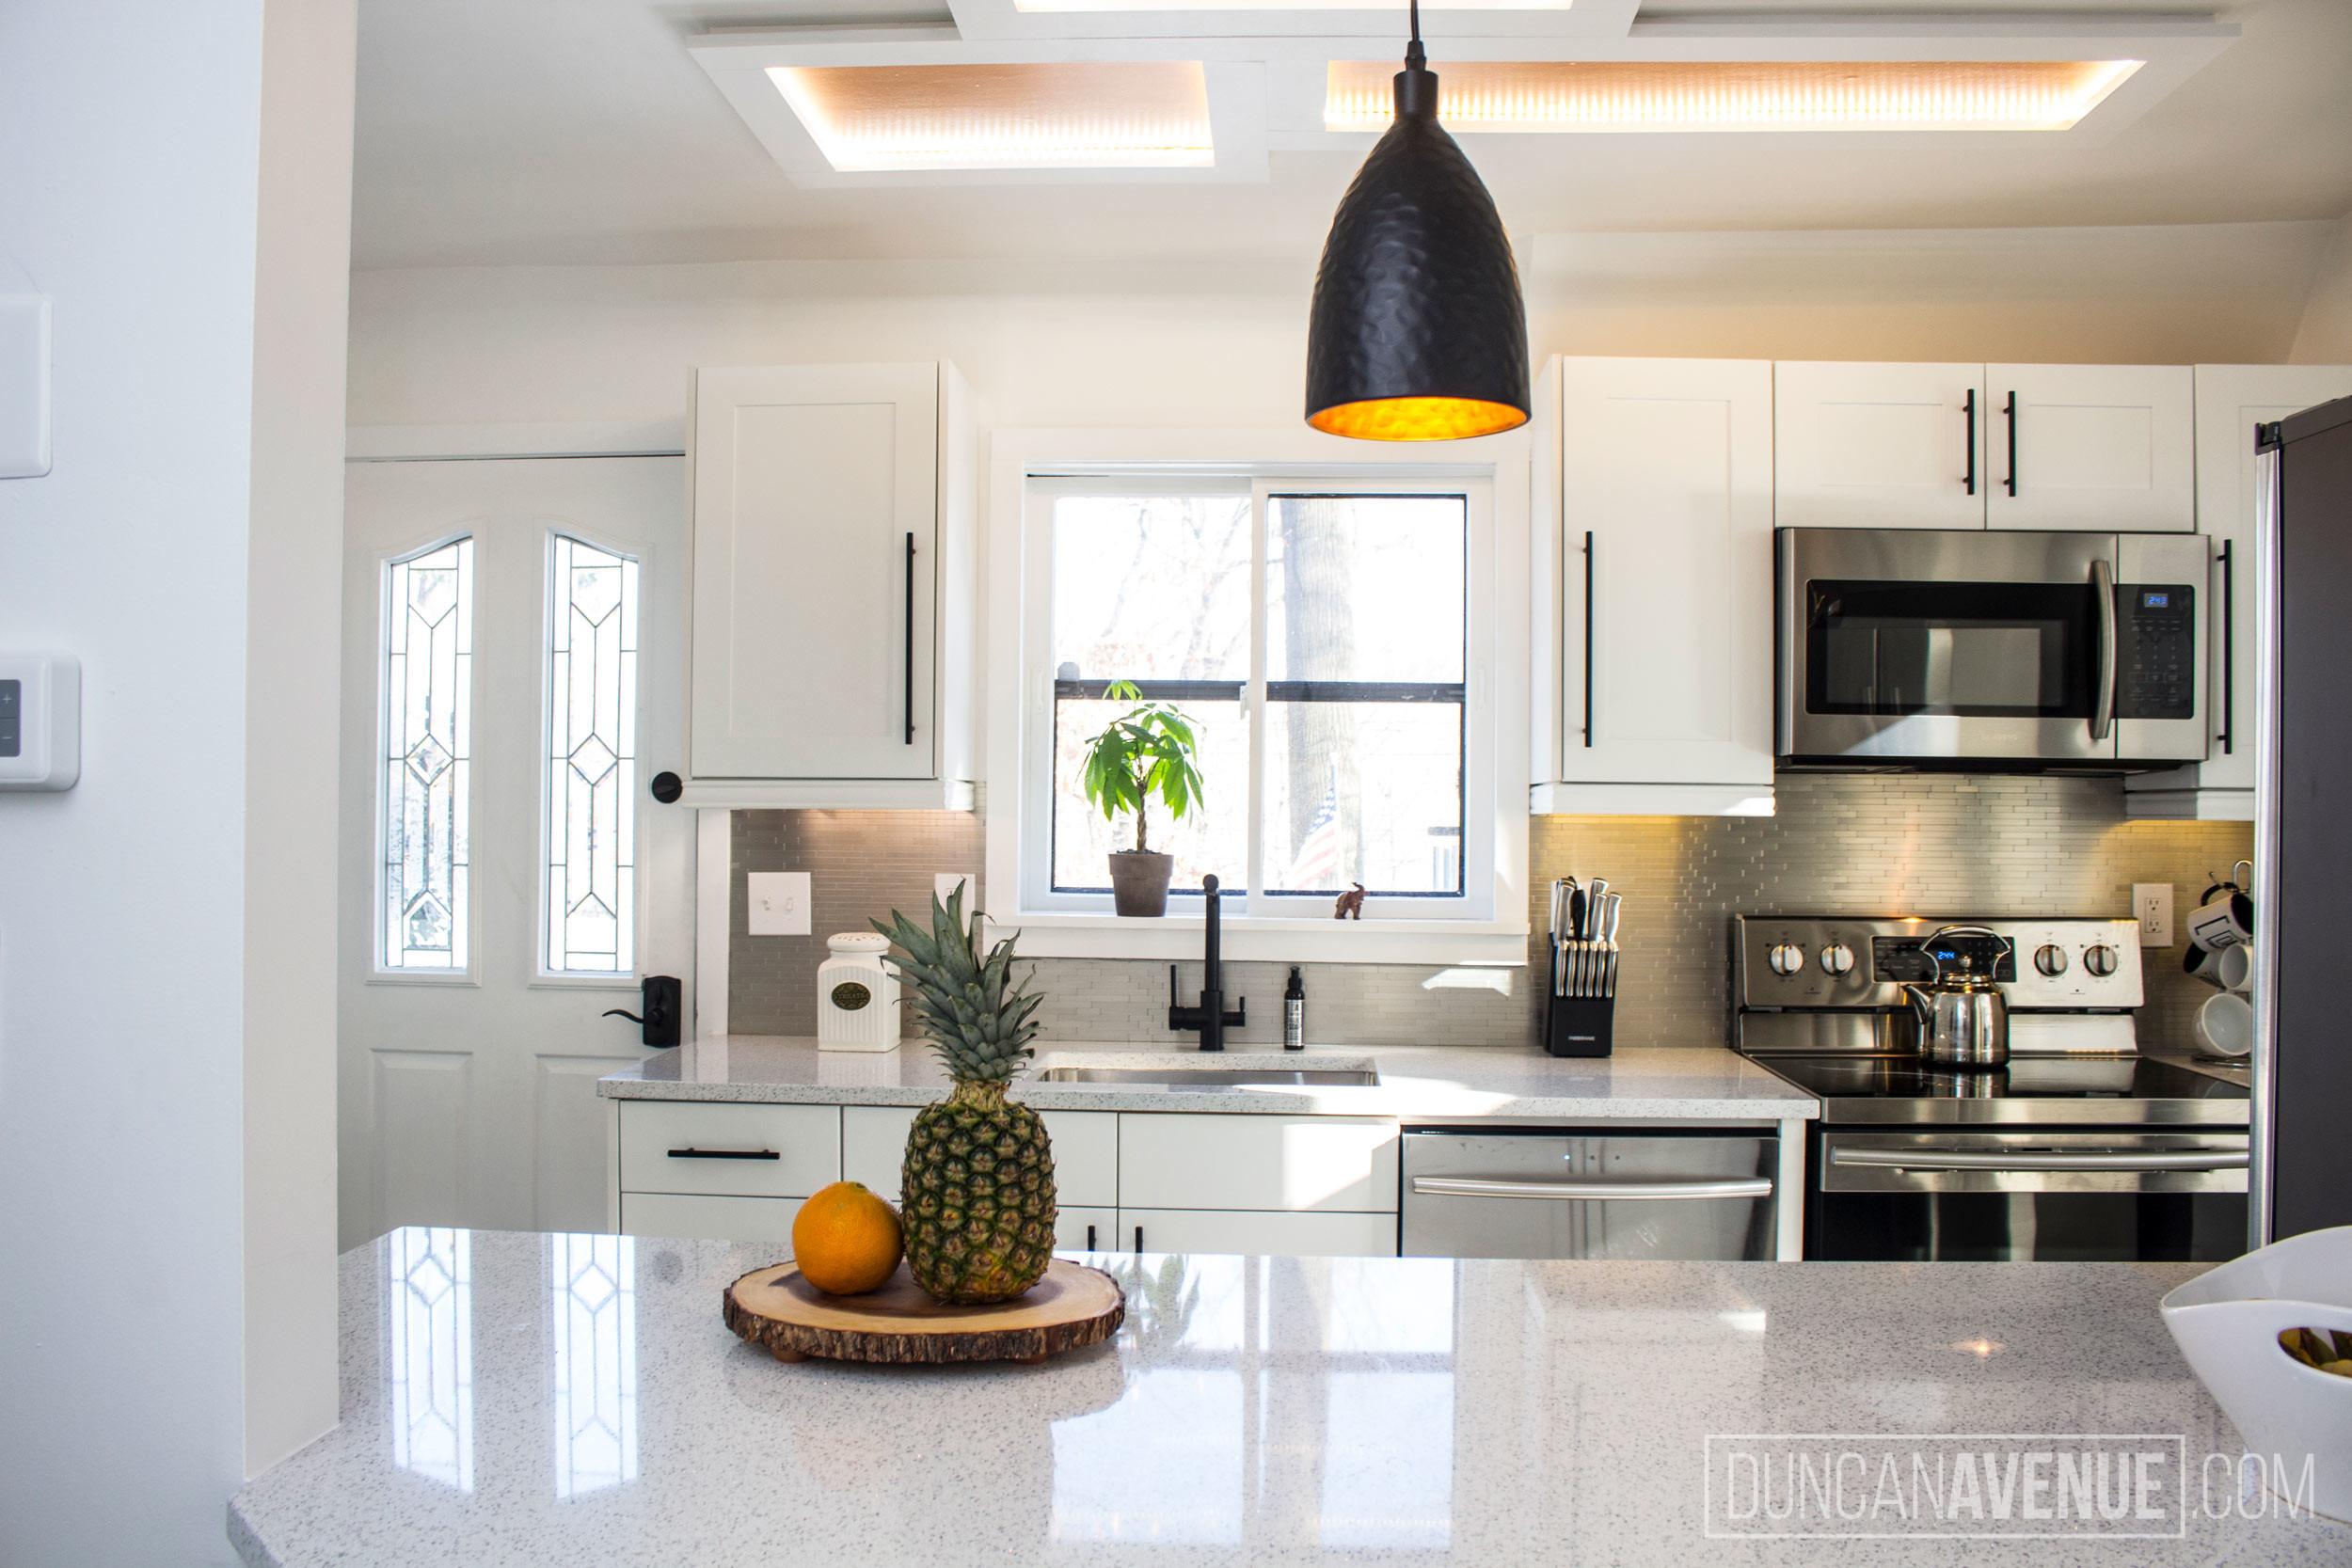 Custom & Architectural Lighting and Light Fixtures by Duncan Avenue Design Studio